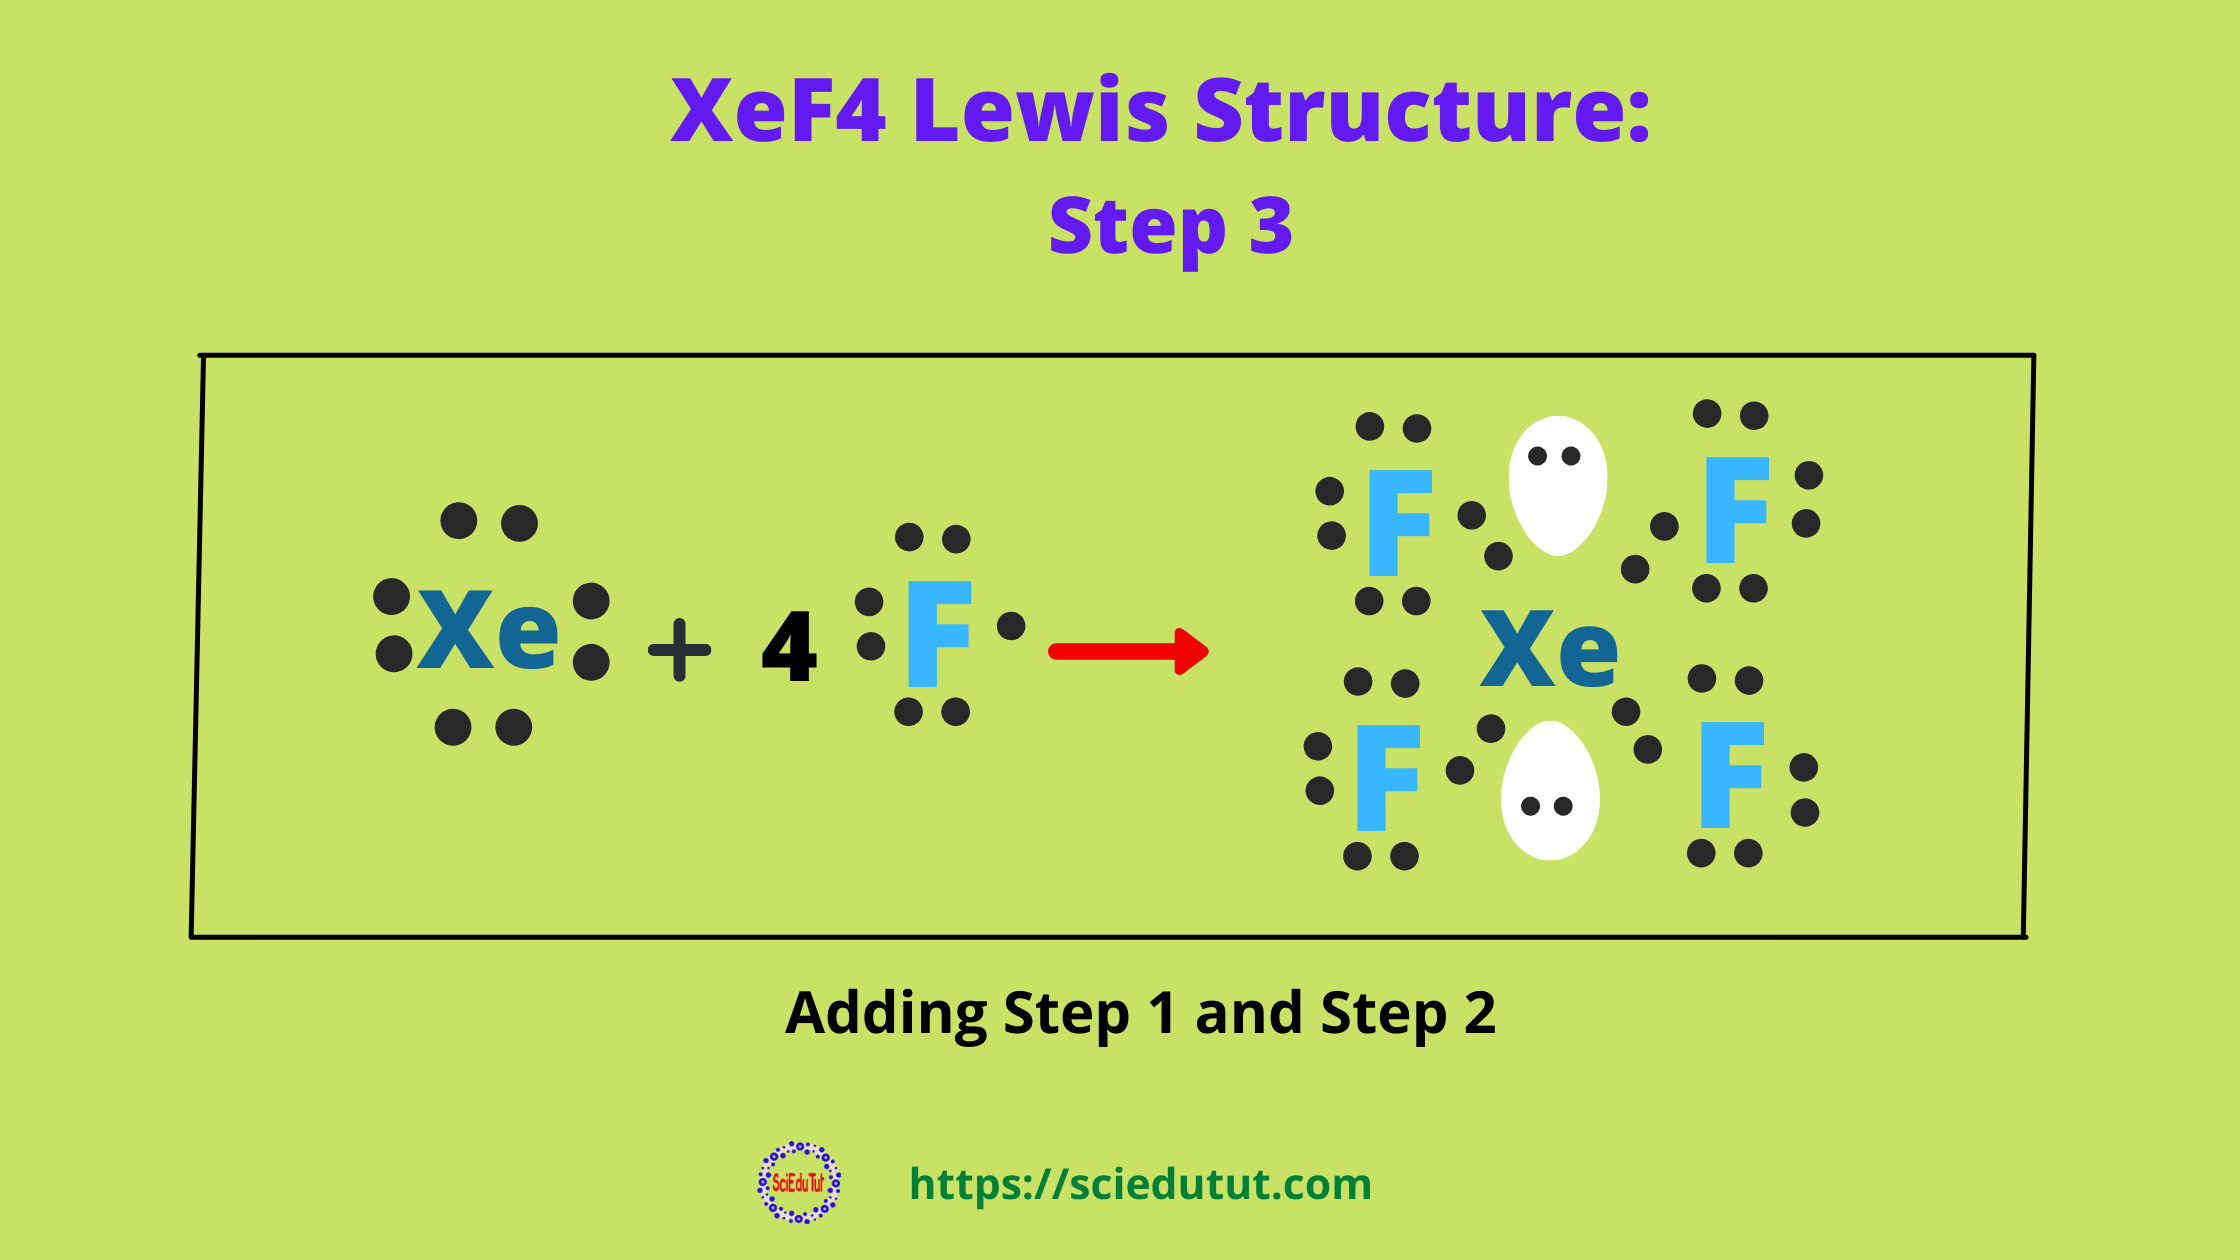 How to draw XeF4 Lewis Structure?